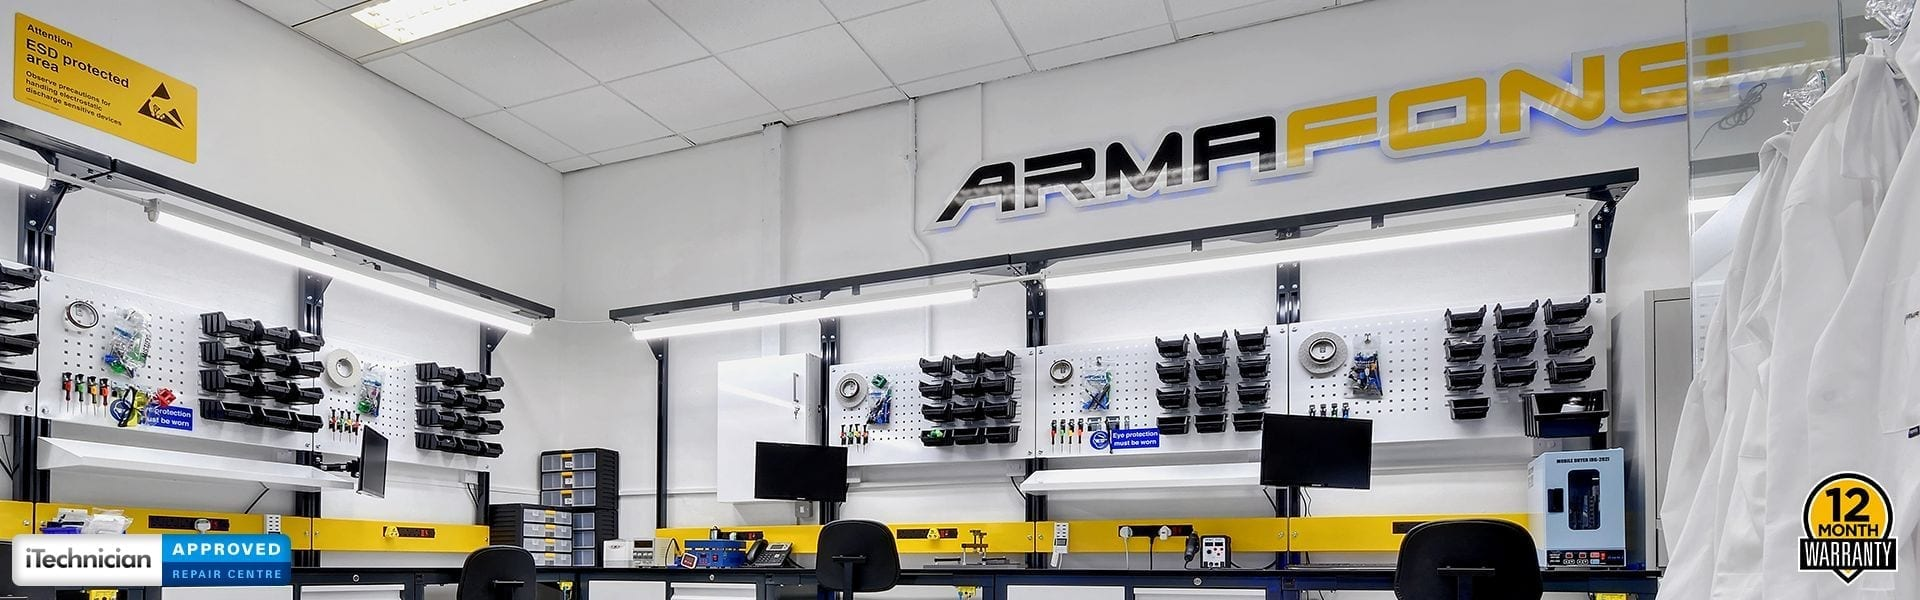 Norwich phone repair - ArmaFone service centre